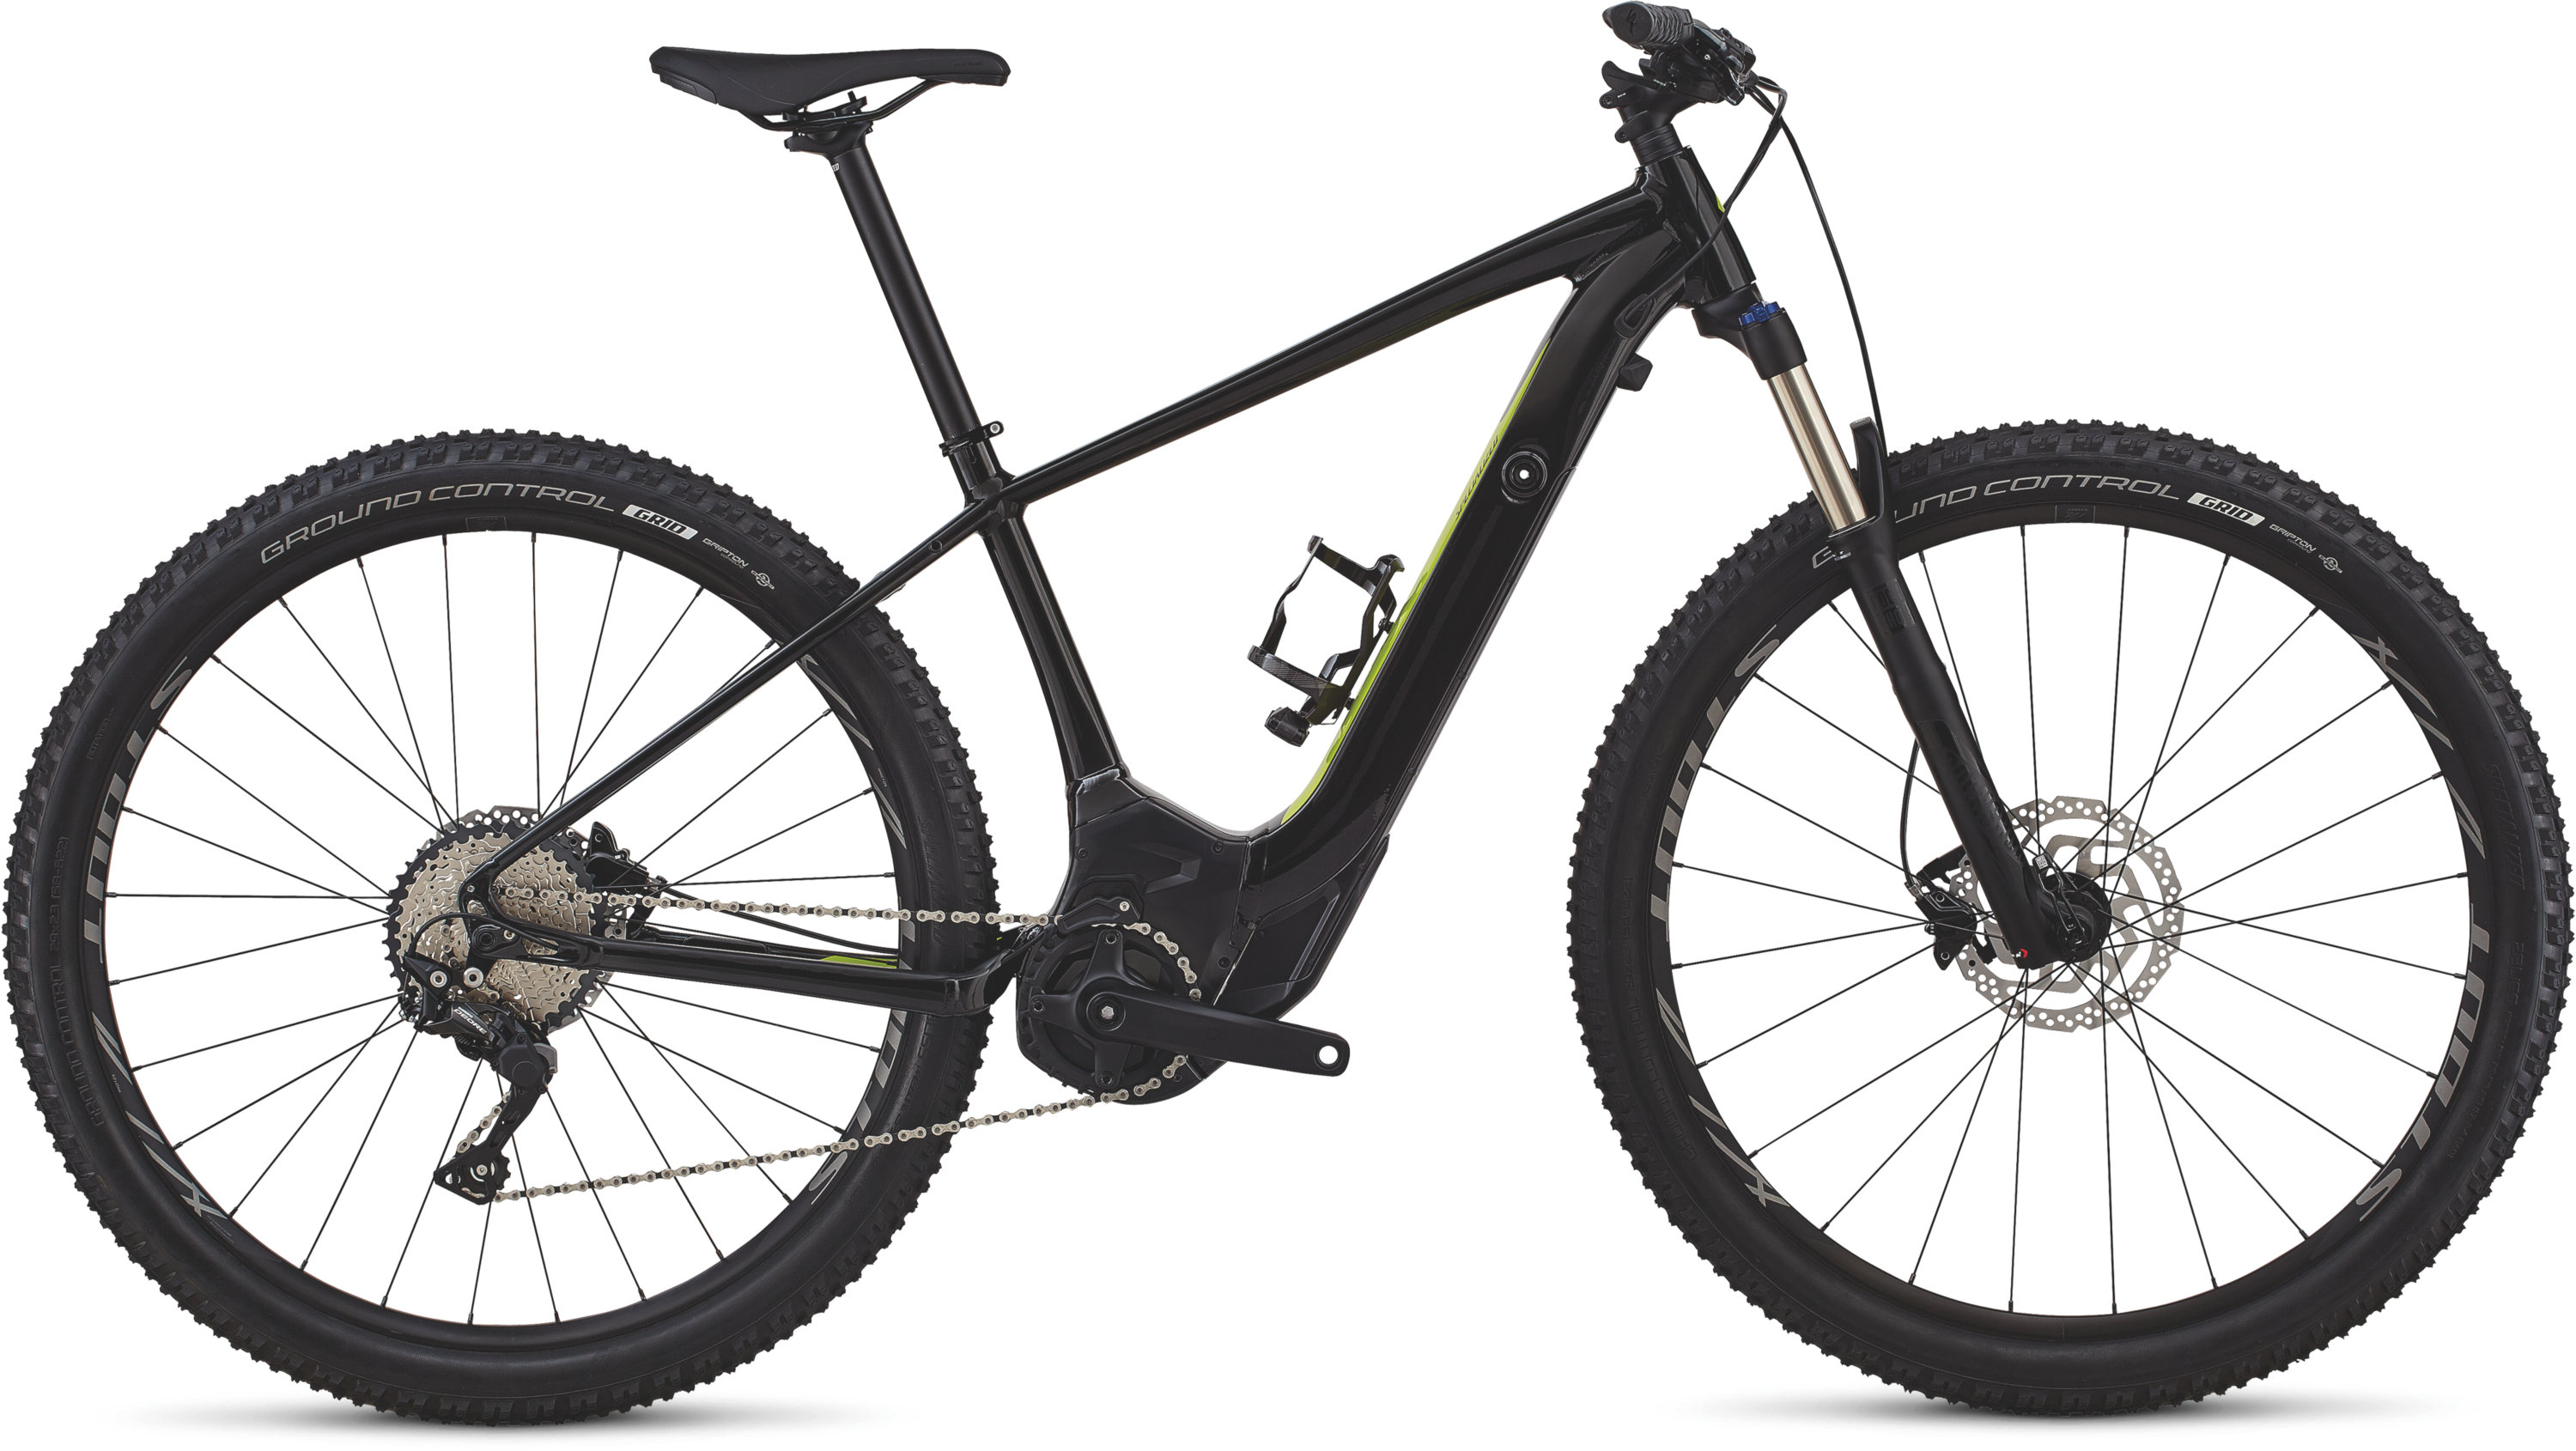 Specialized Men´s Turbo Levo Hardtail 29 Black / Hyper M - schneider-sports